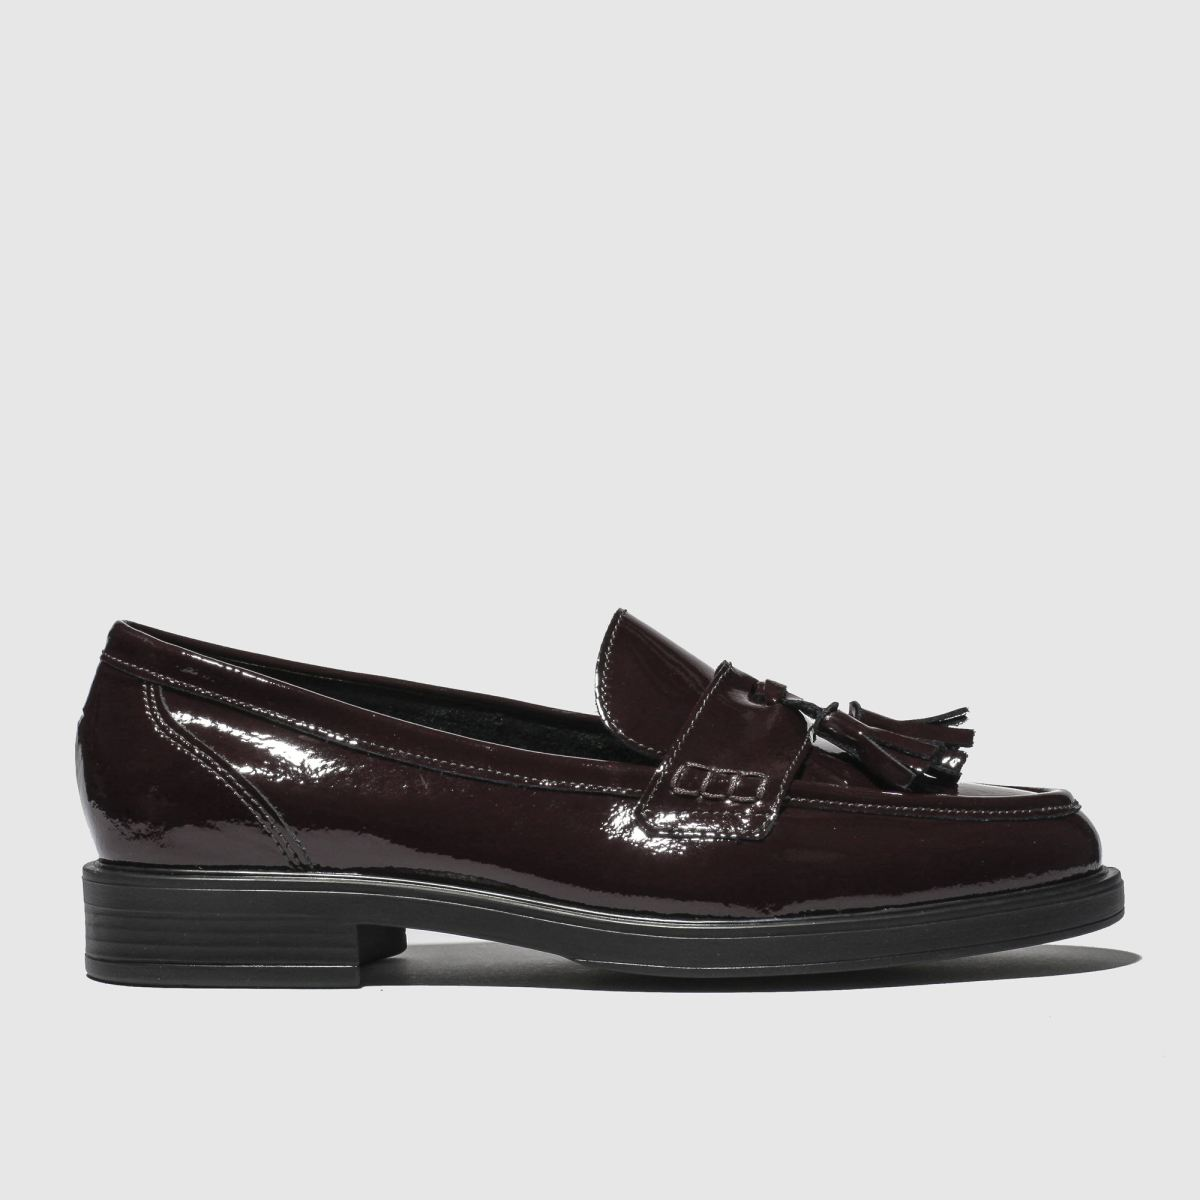 schuh Schuh Burgundy Happiness Flat Shoes